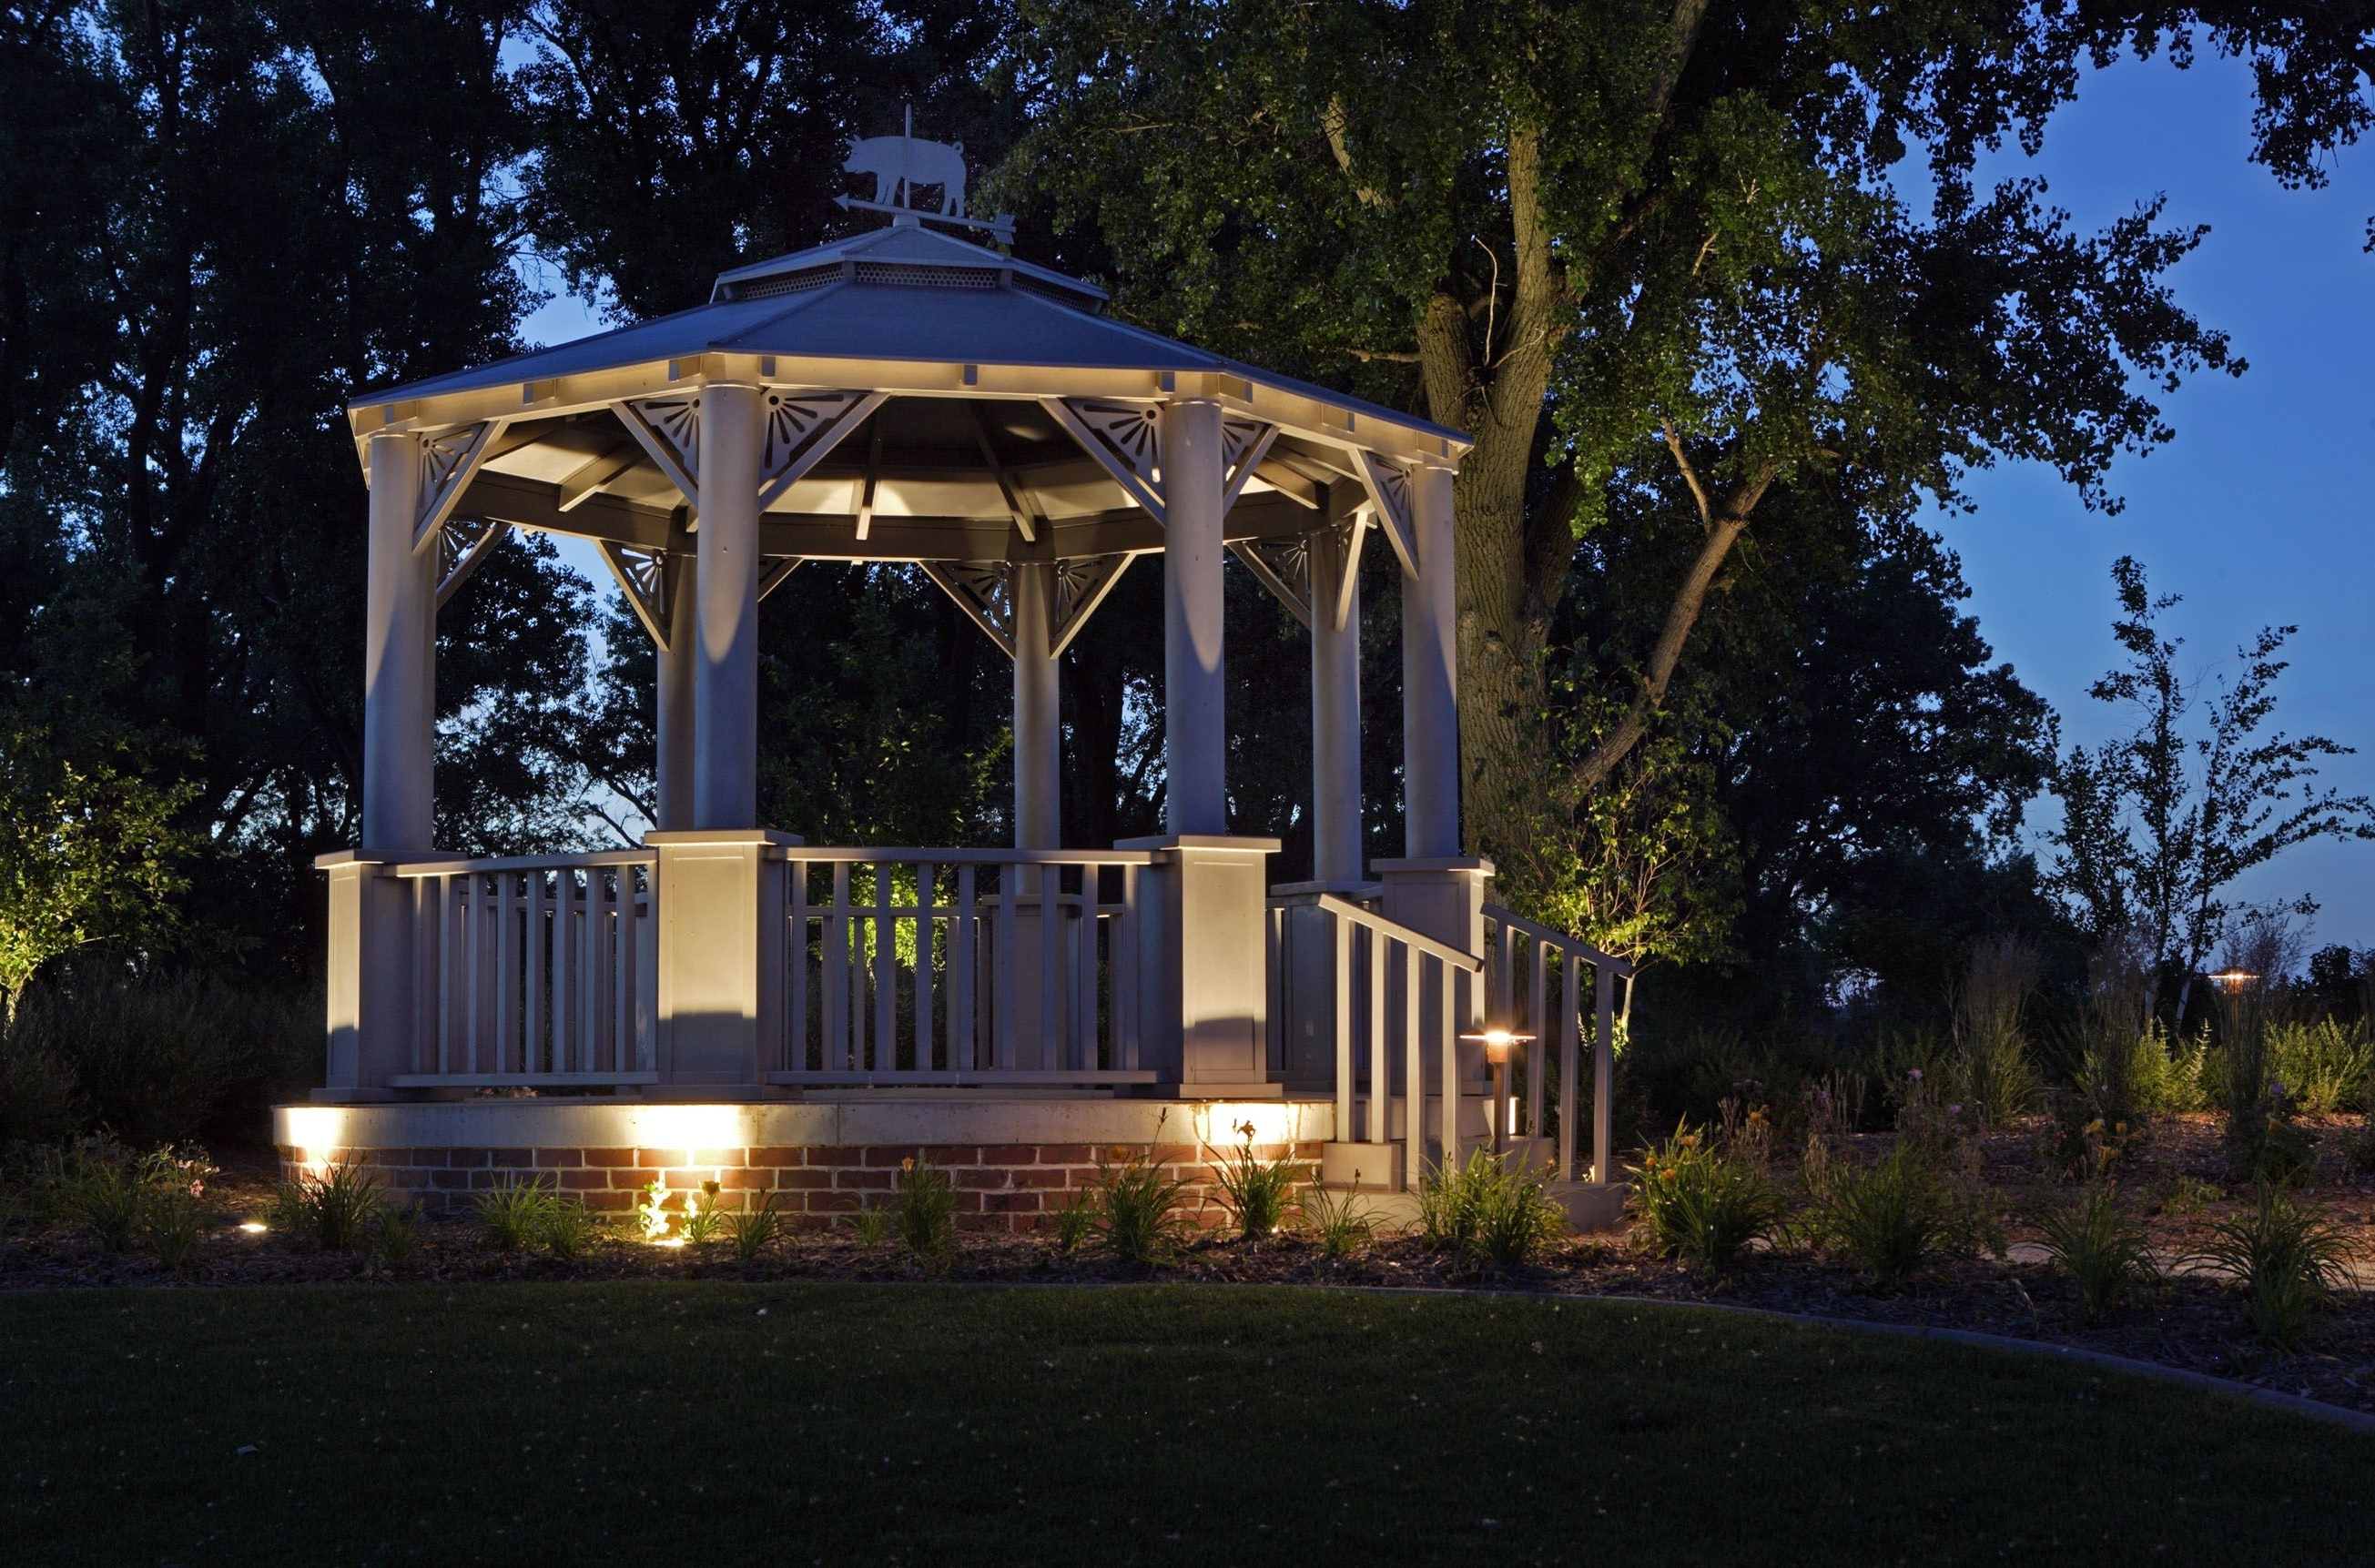 2019 Outdoor Gazebo Lanterns Pertaining To 43+ Gorgeous And Easy Diy Outdoor Lighting Ideas (Gallery 14 of 20)